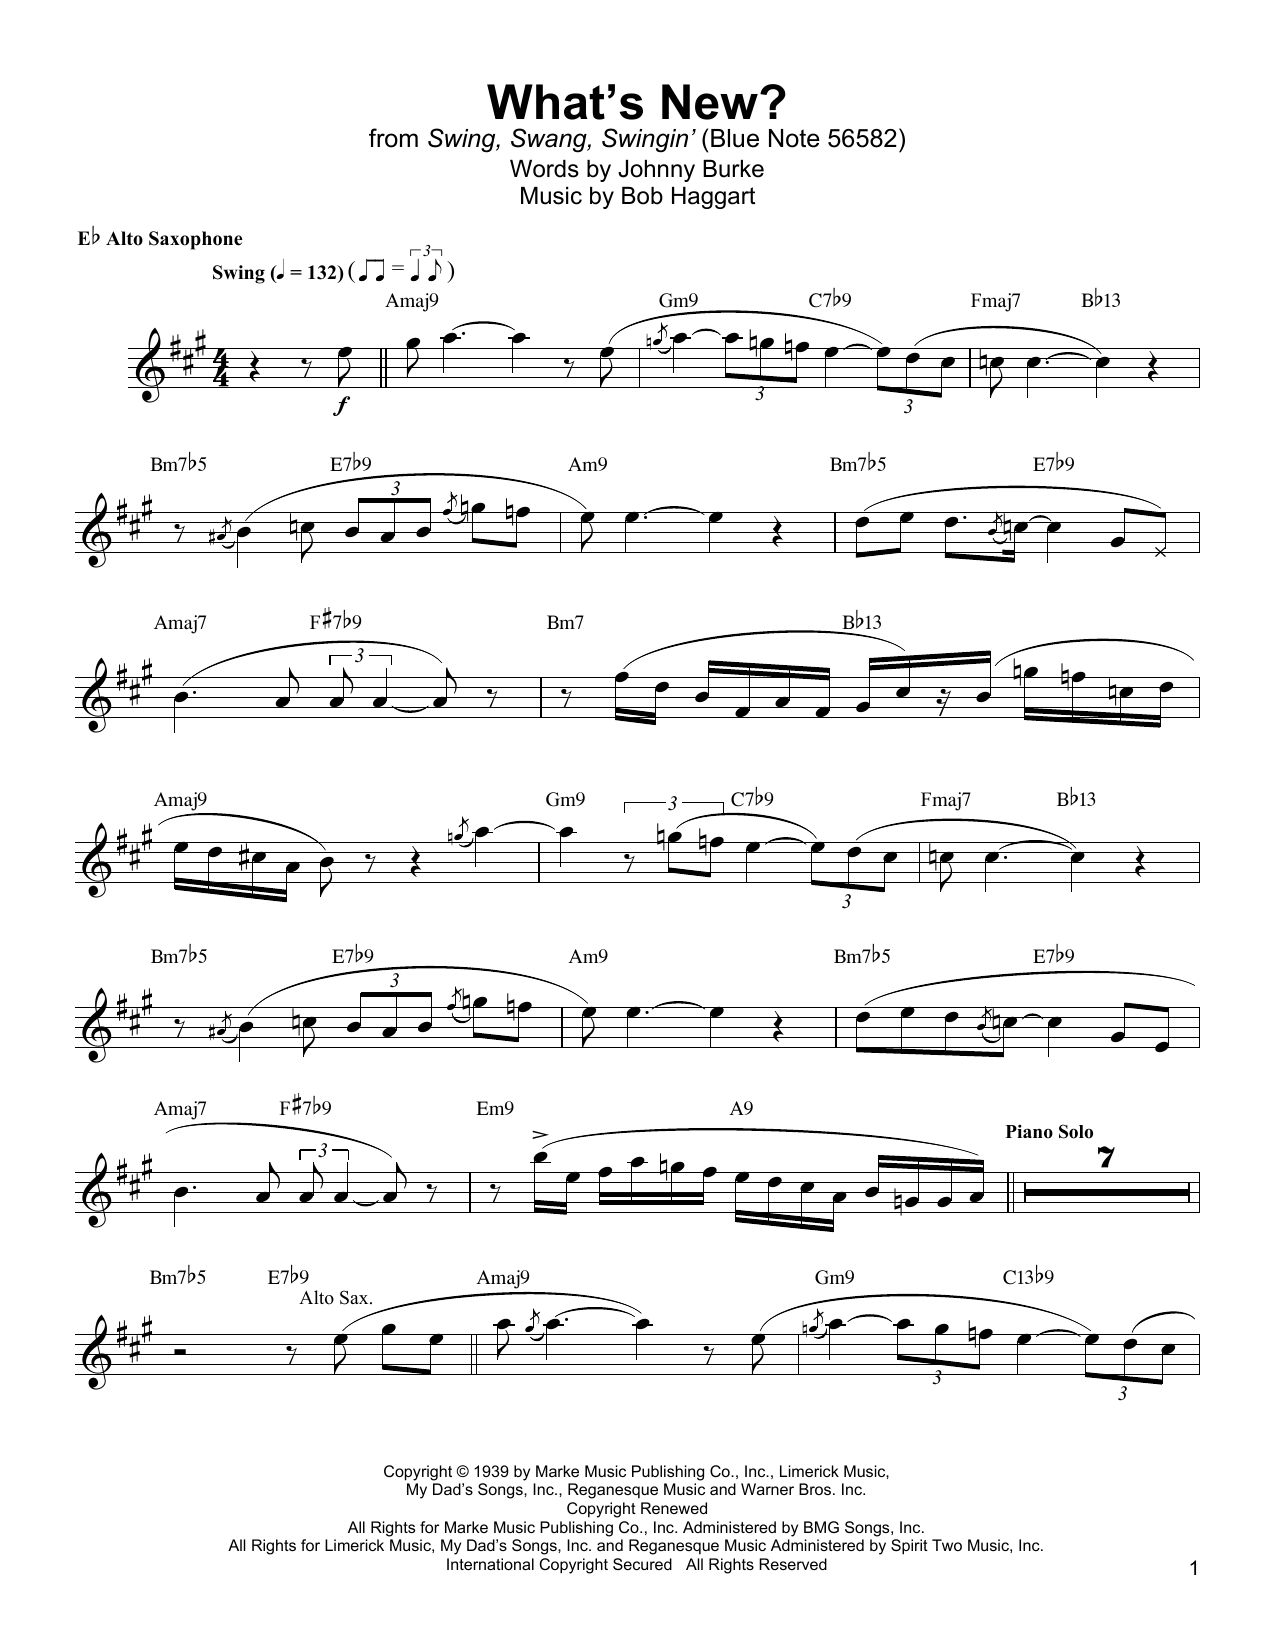 What's New? Sheet Music